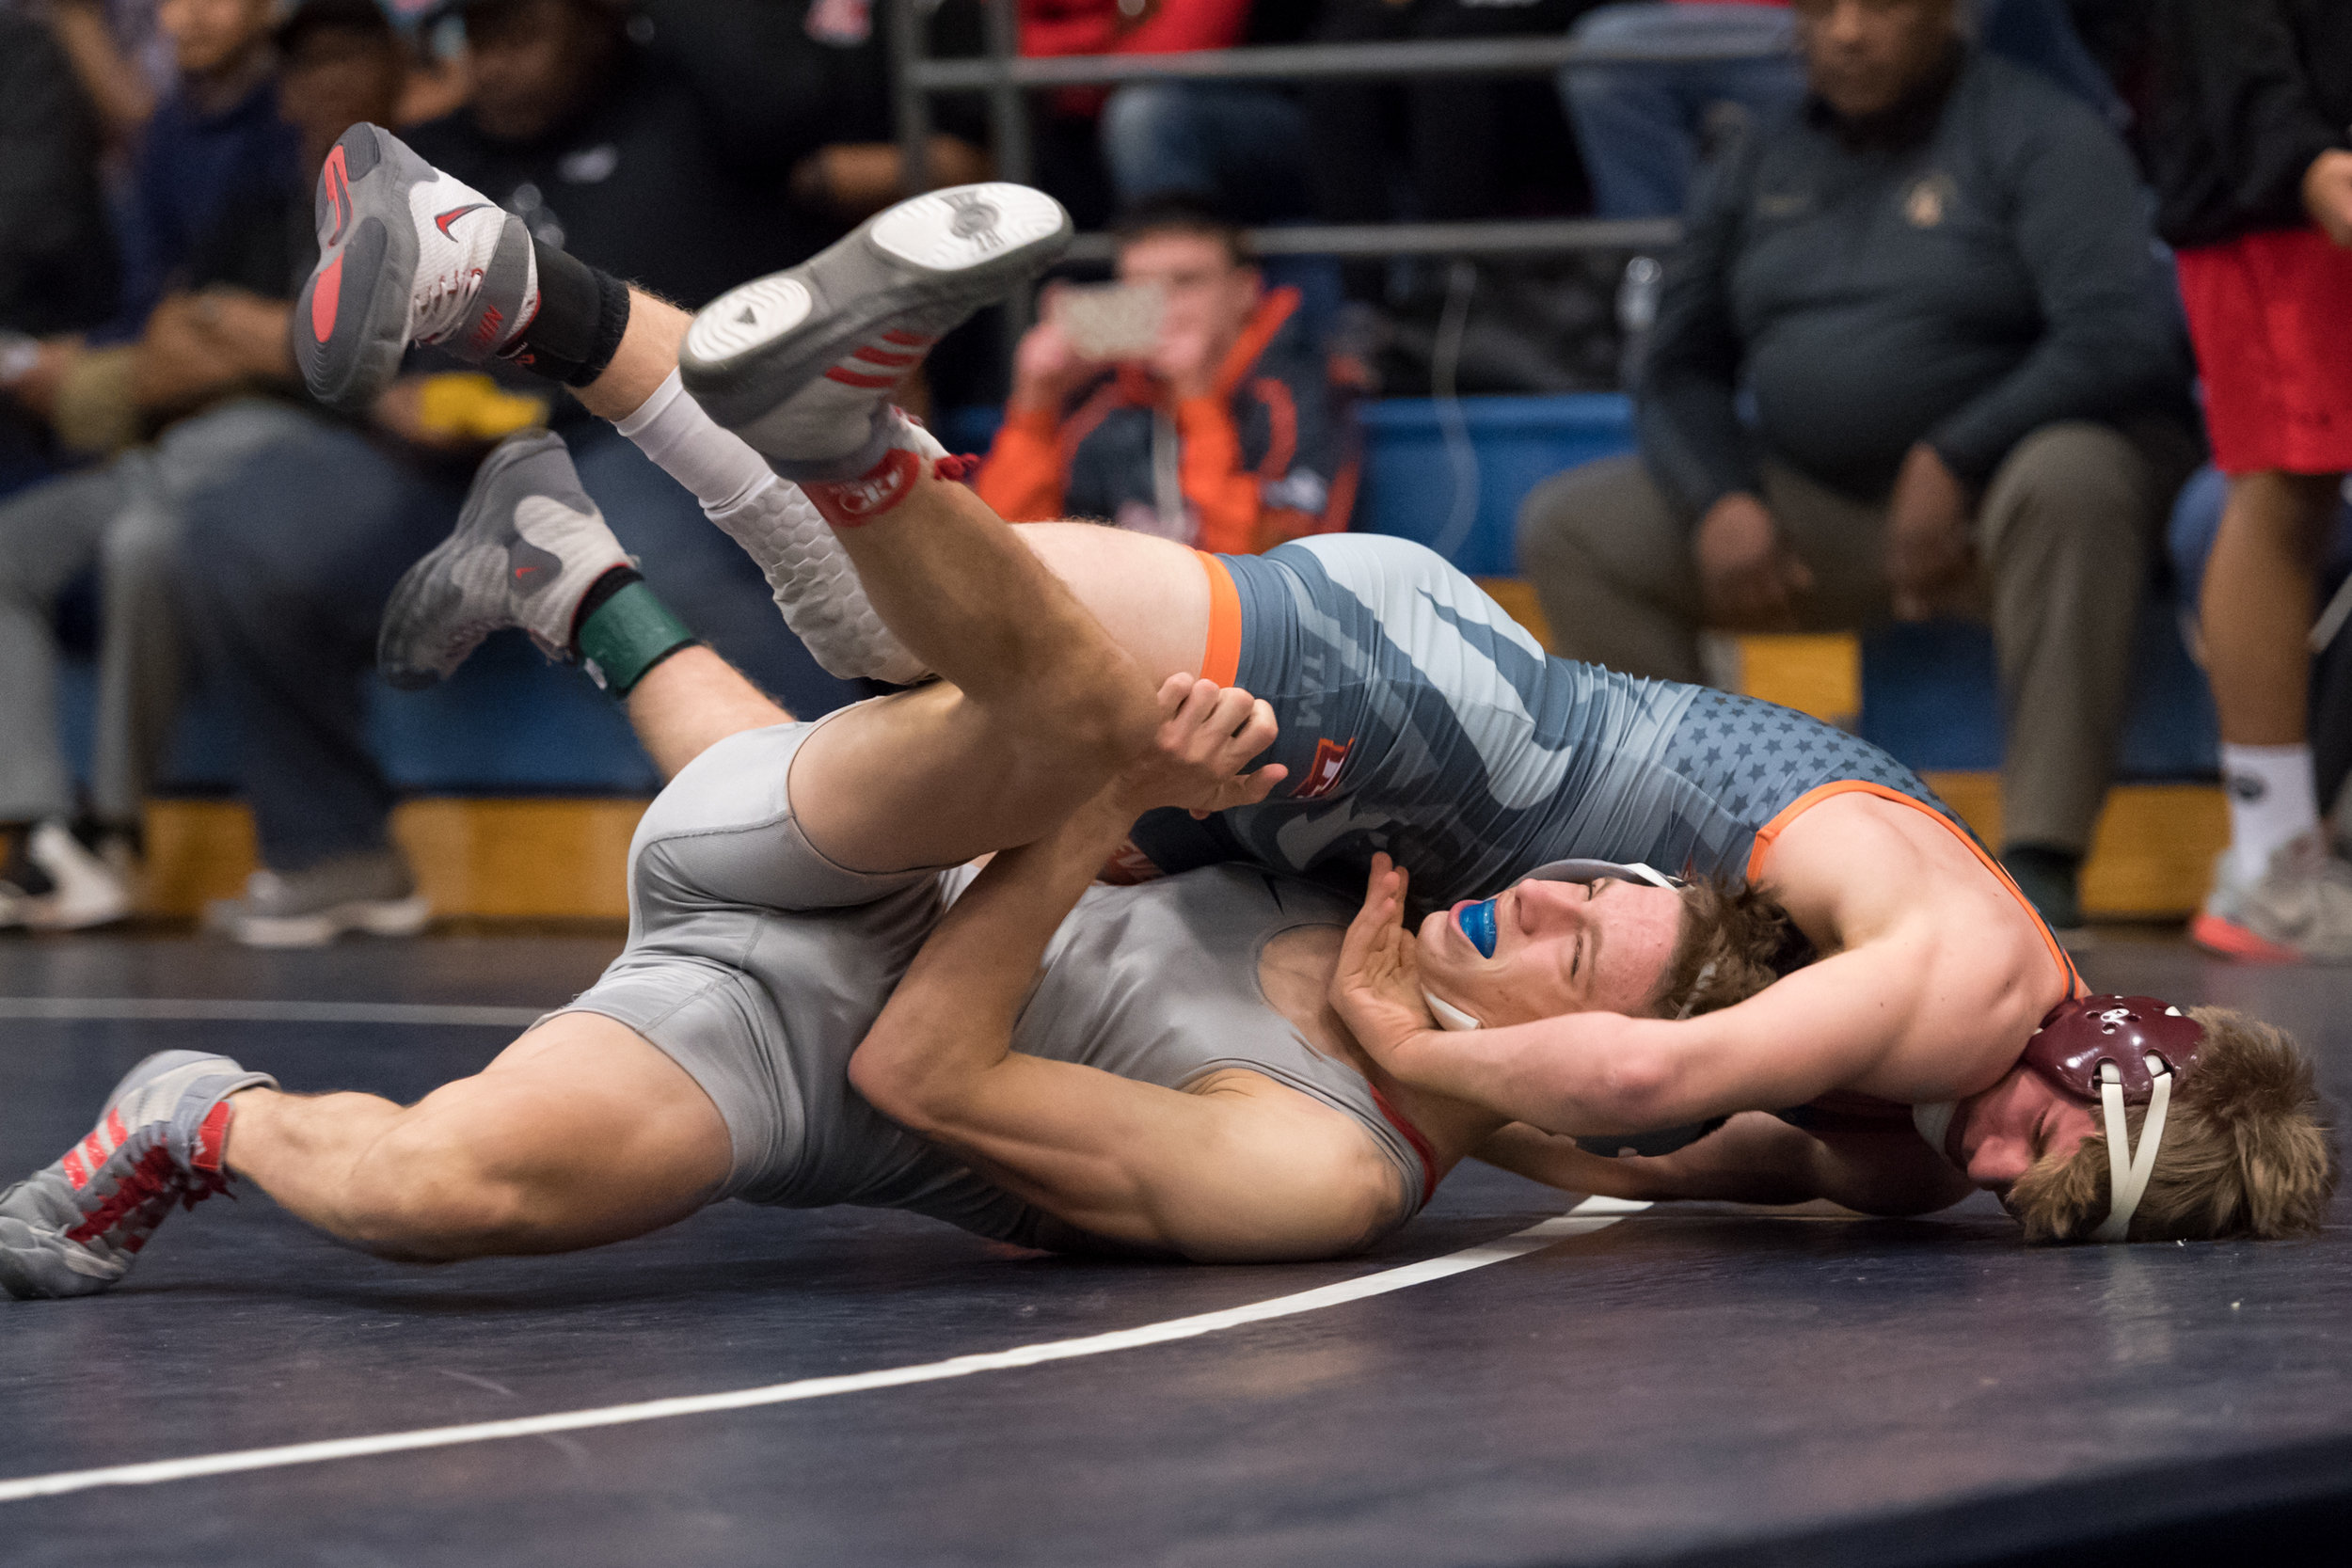 Princess Anne's Joshua Crendally works escape Mountain View's Steven Lang during the 138 pound match at the VHSL Region 5 State Championship held on Saturday, February 17, 2018 at Oscar Smith High School. Crendally won the 138 pound state championship.